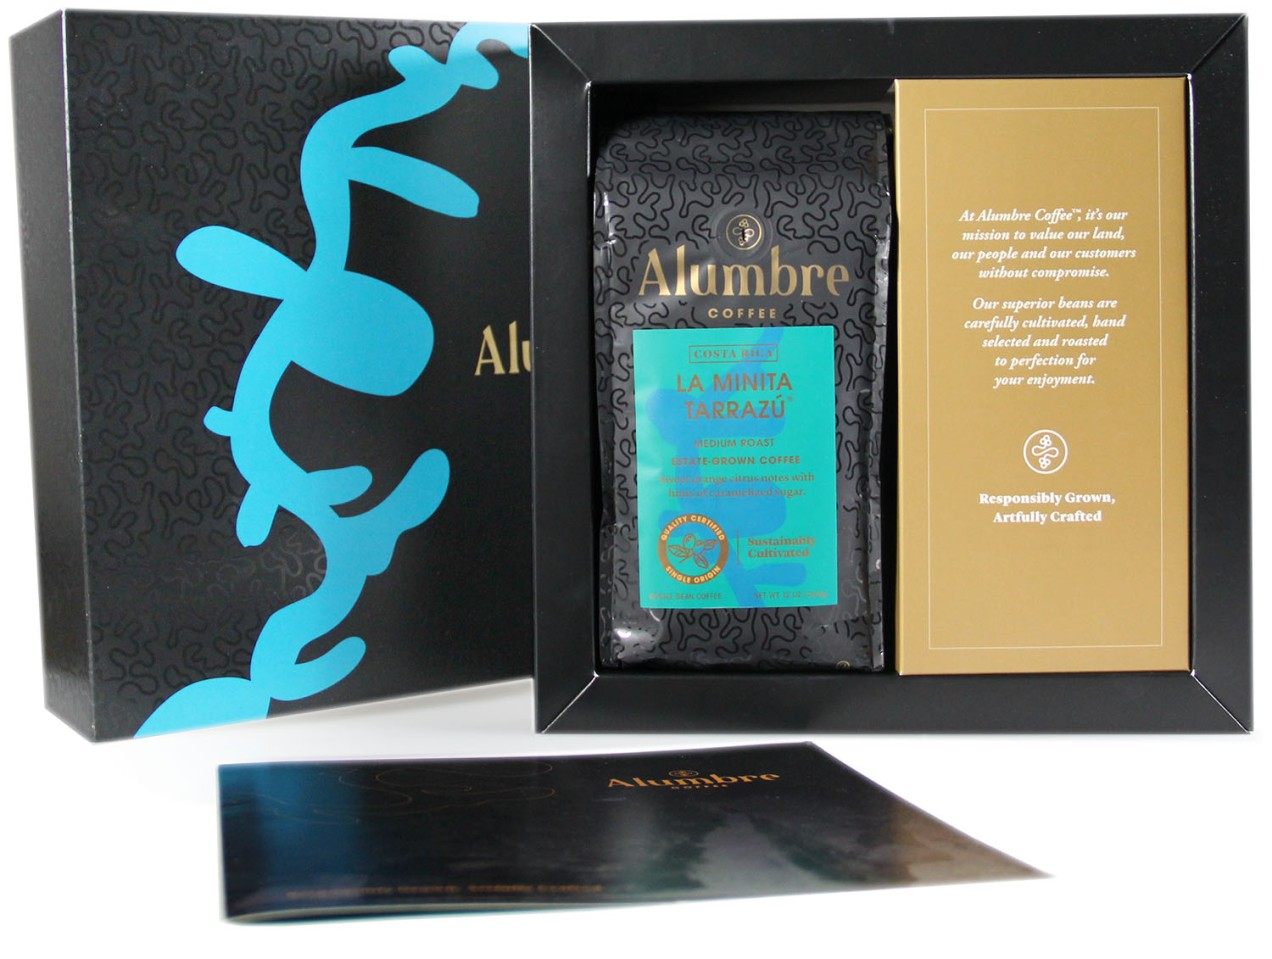 Alumbre Gift Box Photo lores